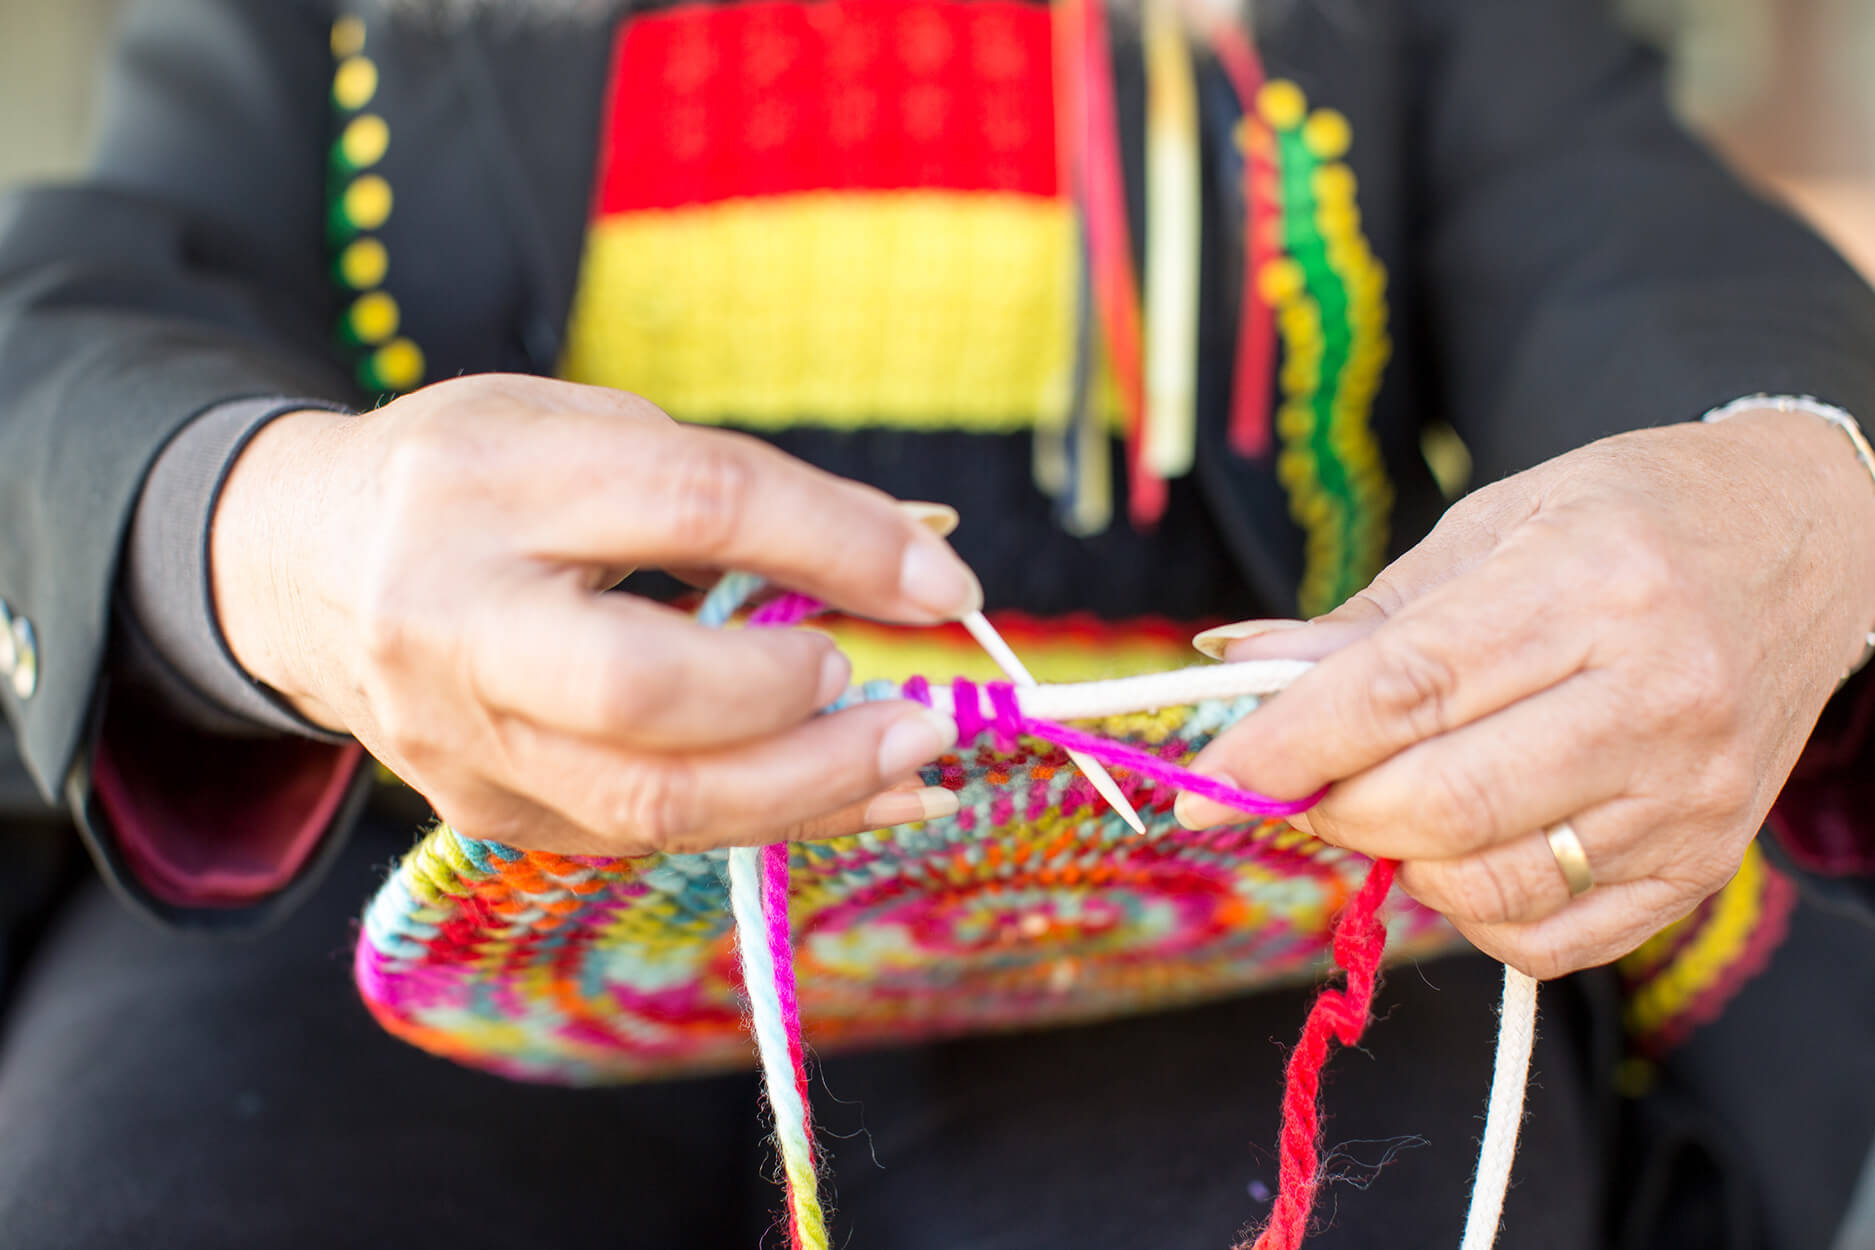 A image of a feminine hands knitting with one knitting needle and colorful wool